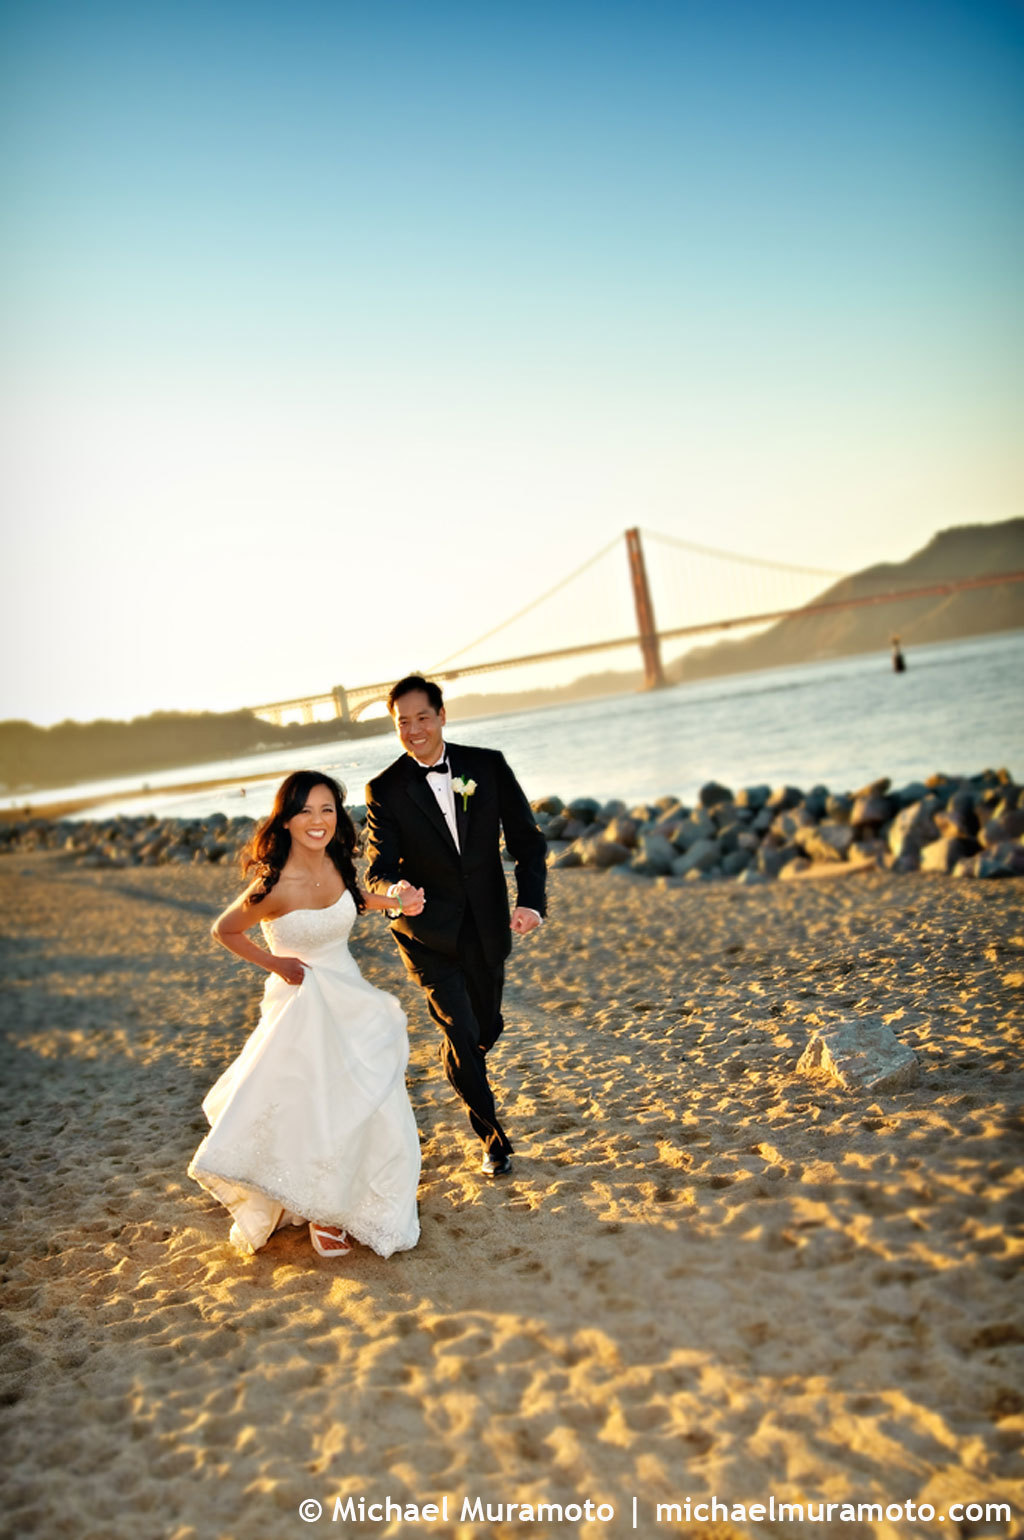 Beach, Bride, Groom, San, Francisco, Running, Golden gate bridge, Michael muramoto photography